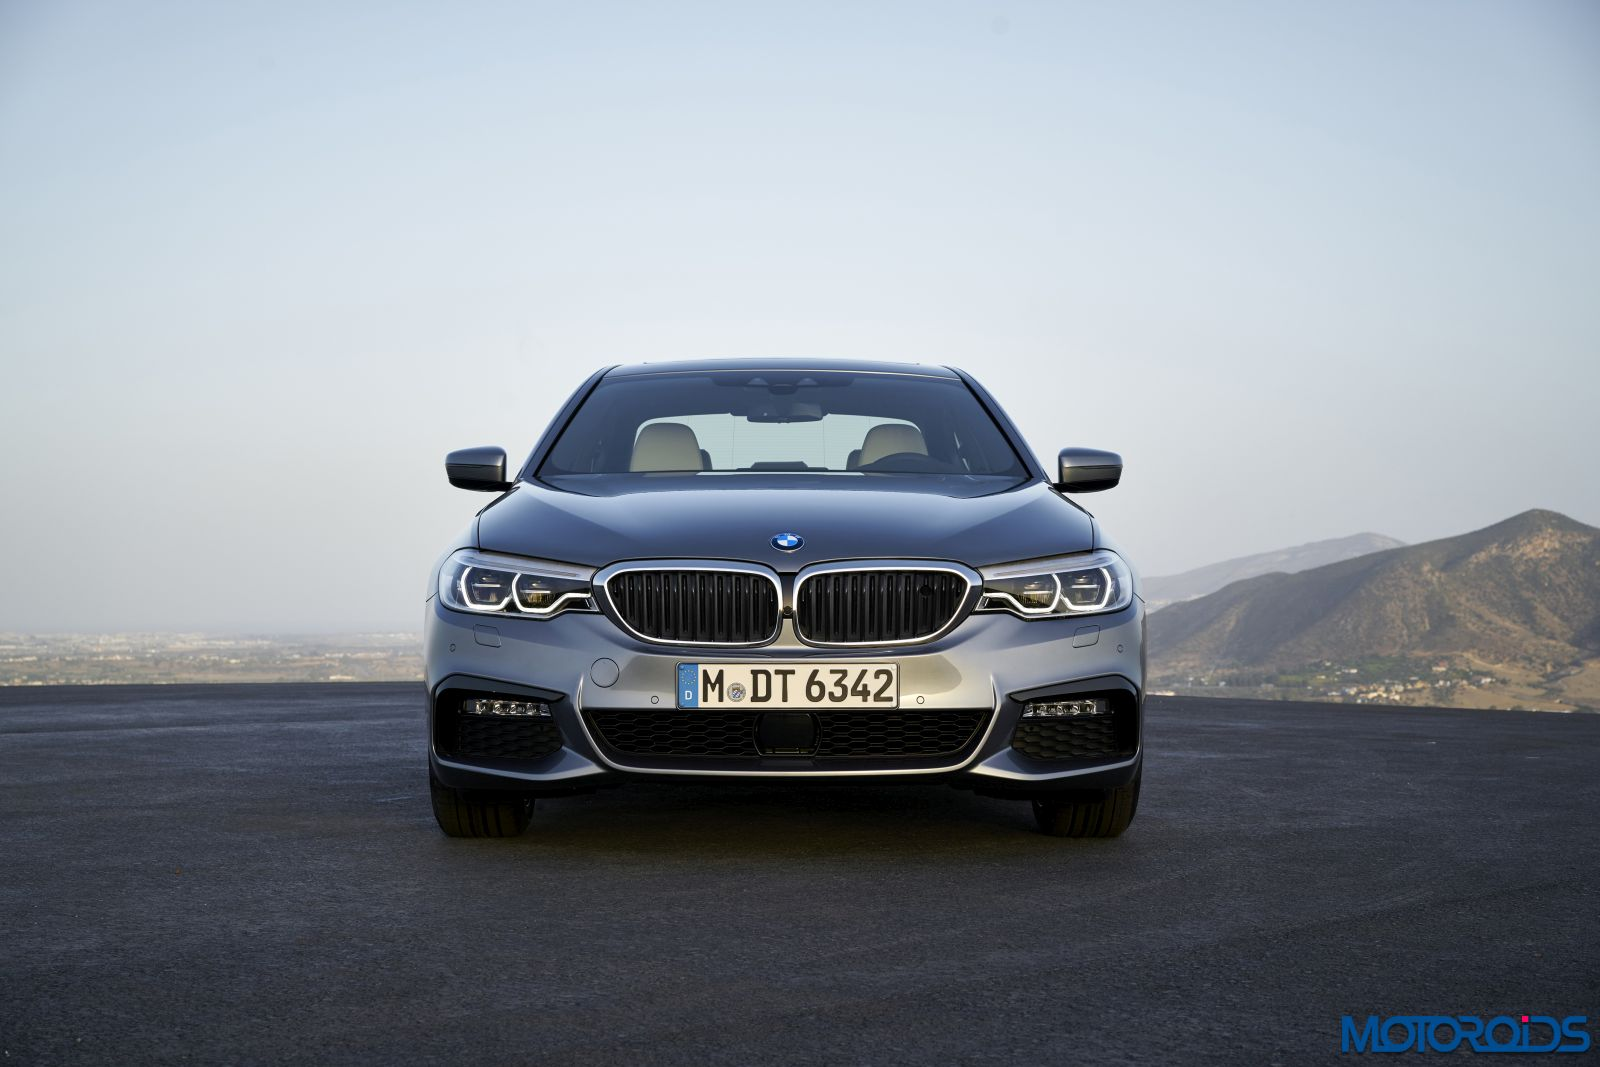 BMW To Invest INR 130 Crore In India To Boost Operations